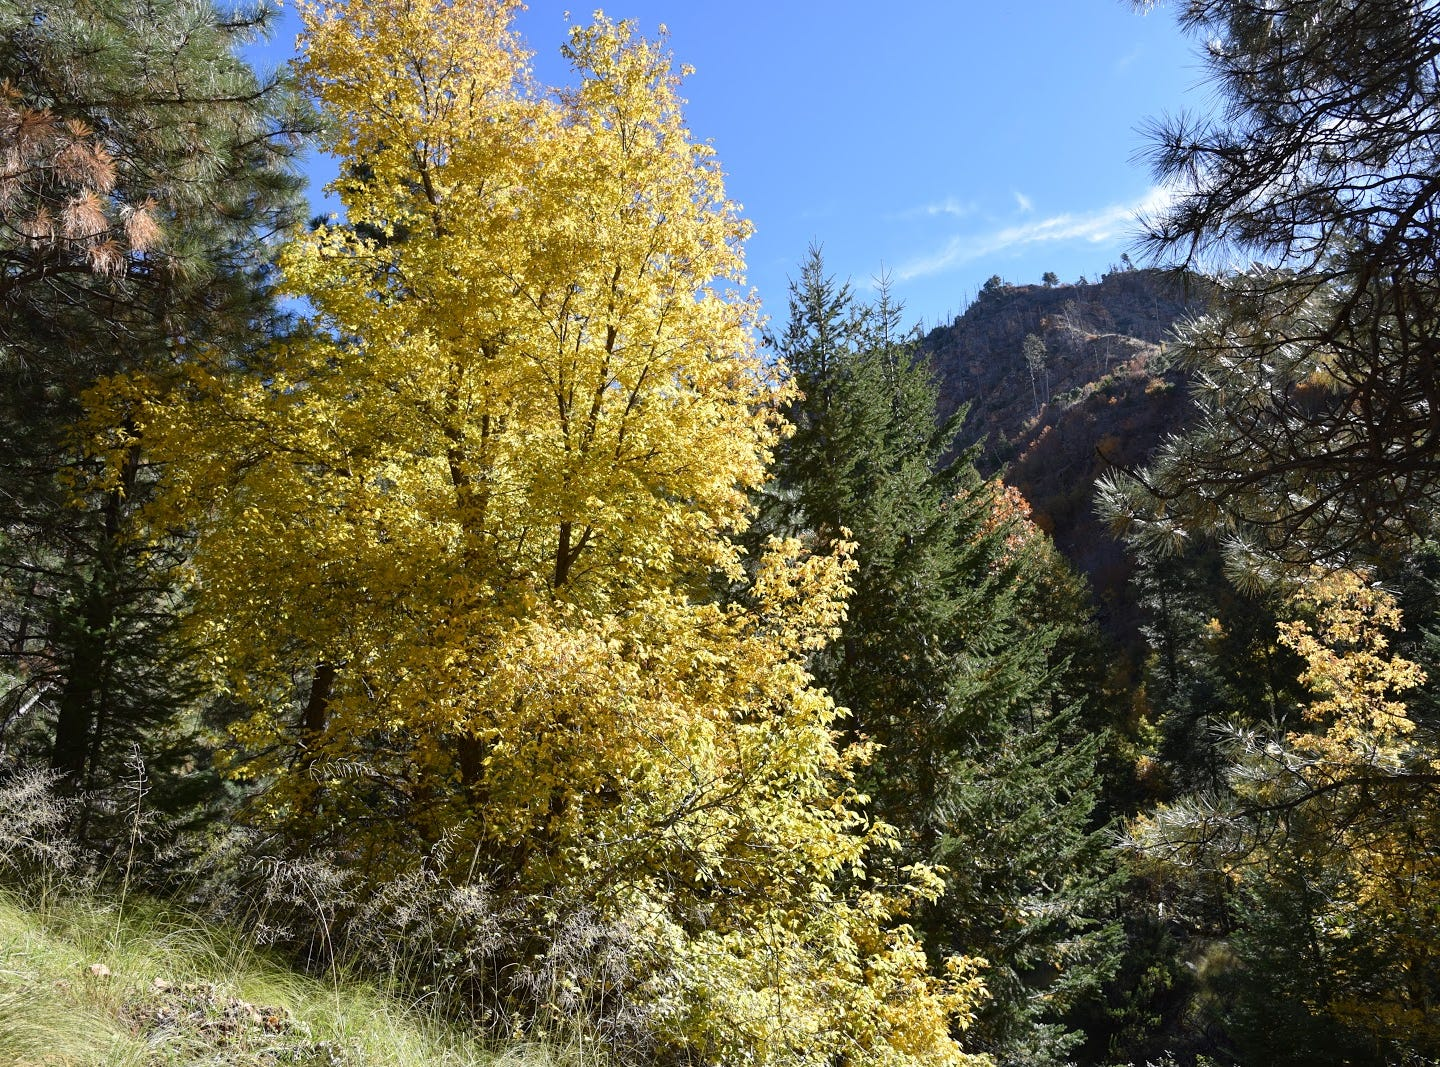 Boxelder trees turn lemony yellow in autumn.